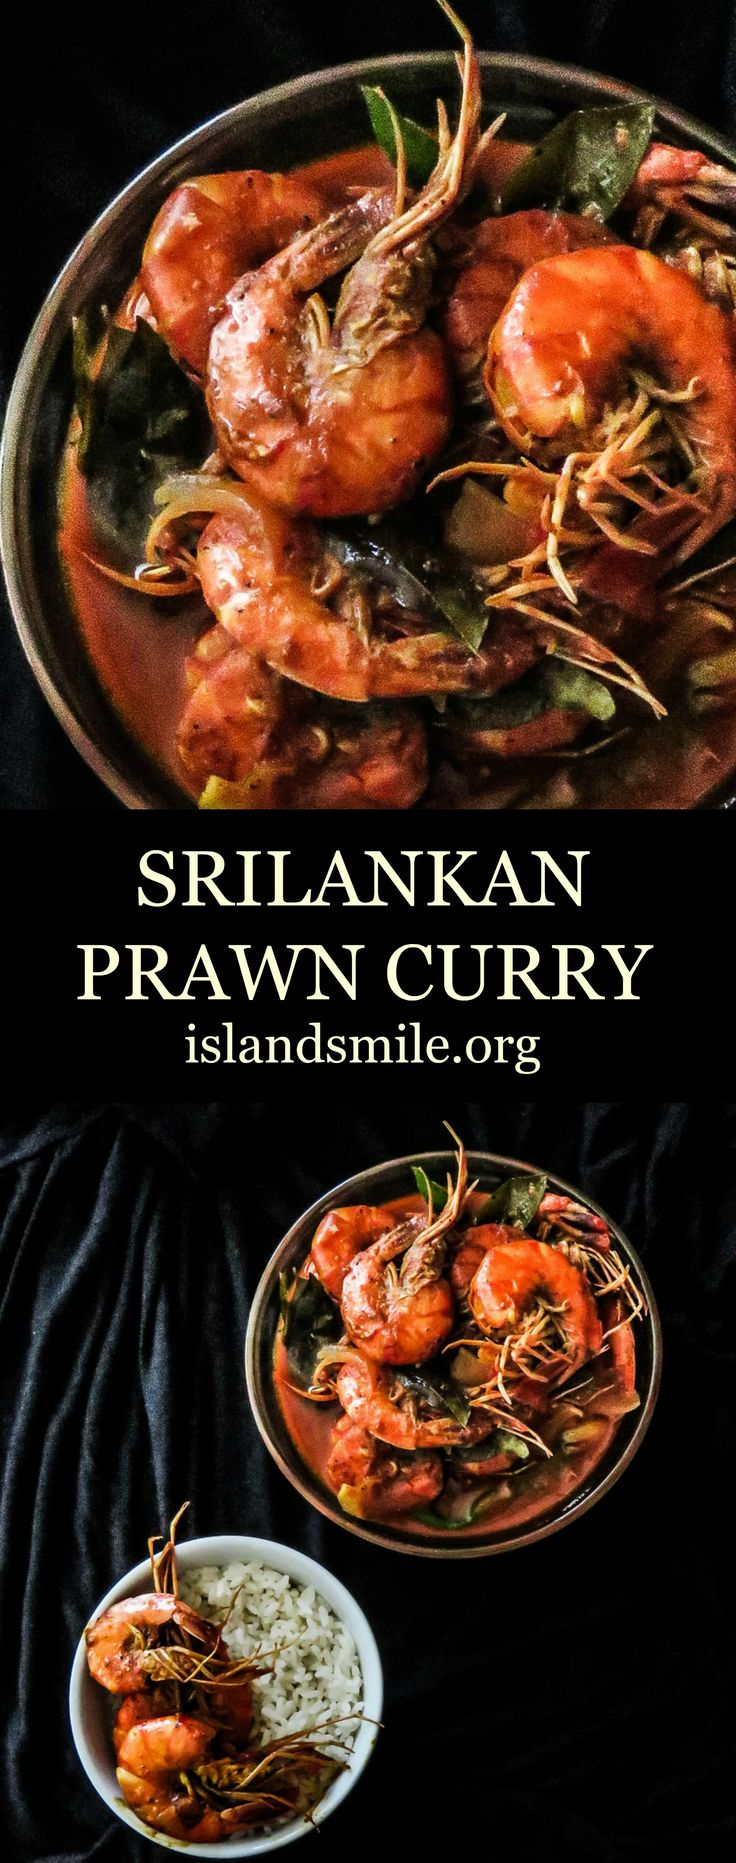 Cooked in Coconut milk and served with hot rice, this Srilankan prawn curry has just the right amount of spices to make it a tasty dish for any type of meal.